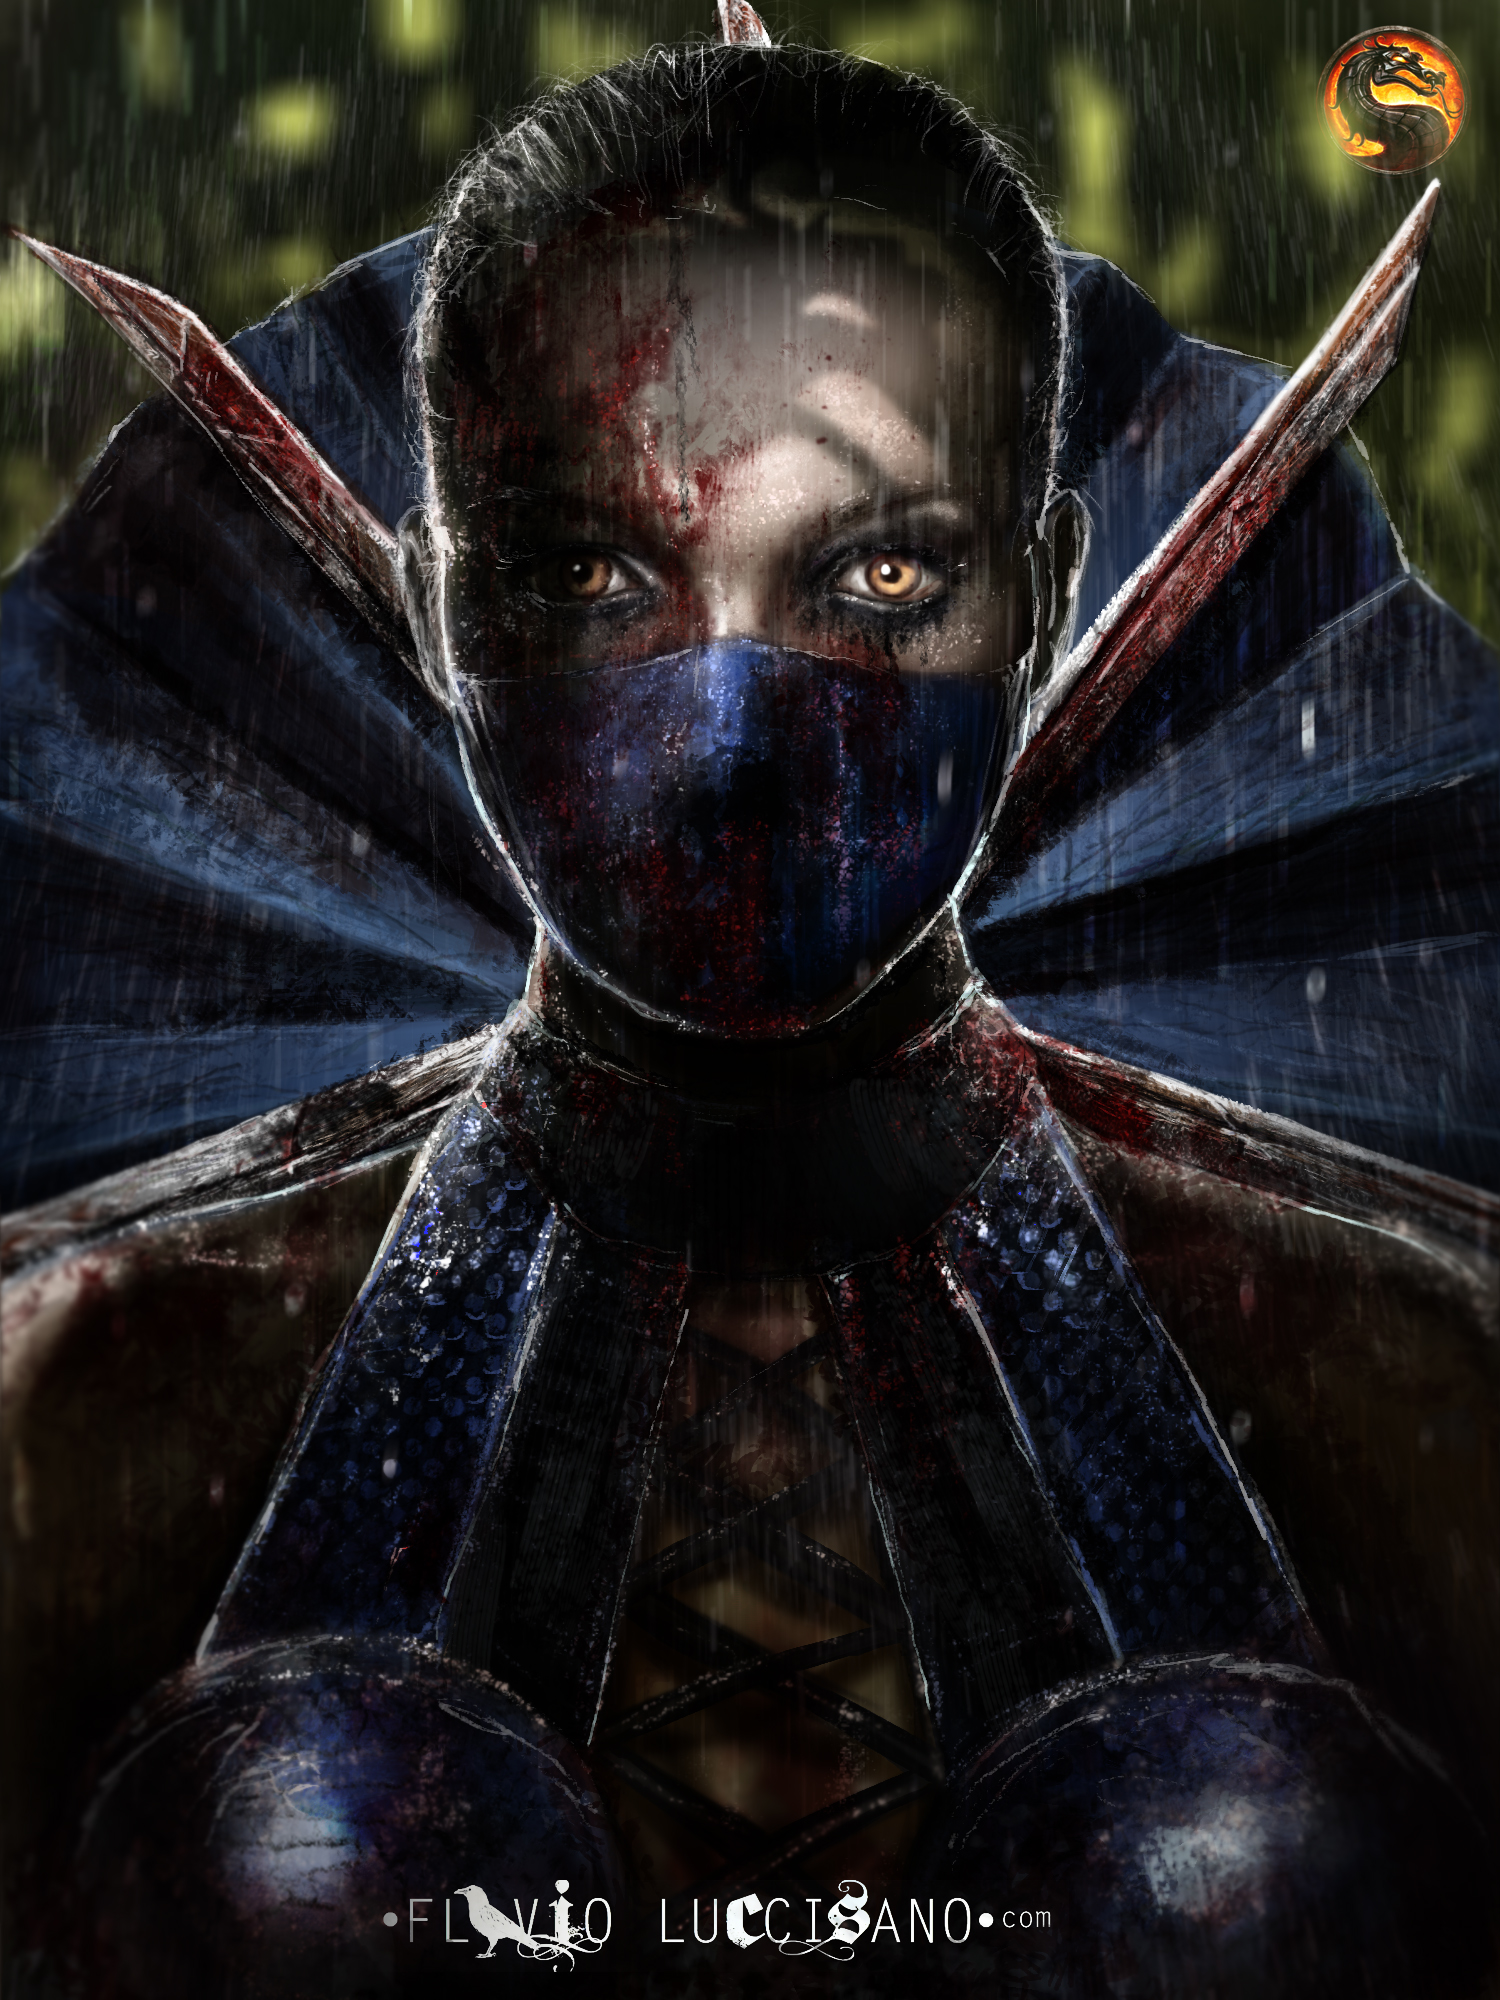 PRINCESS KITANA| Mortal Kombat. Personal version. by flavioluccisano